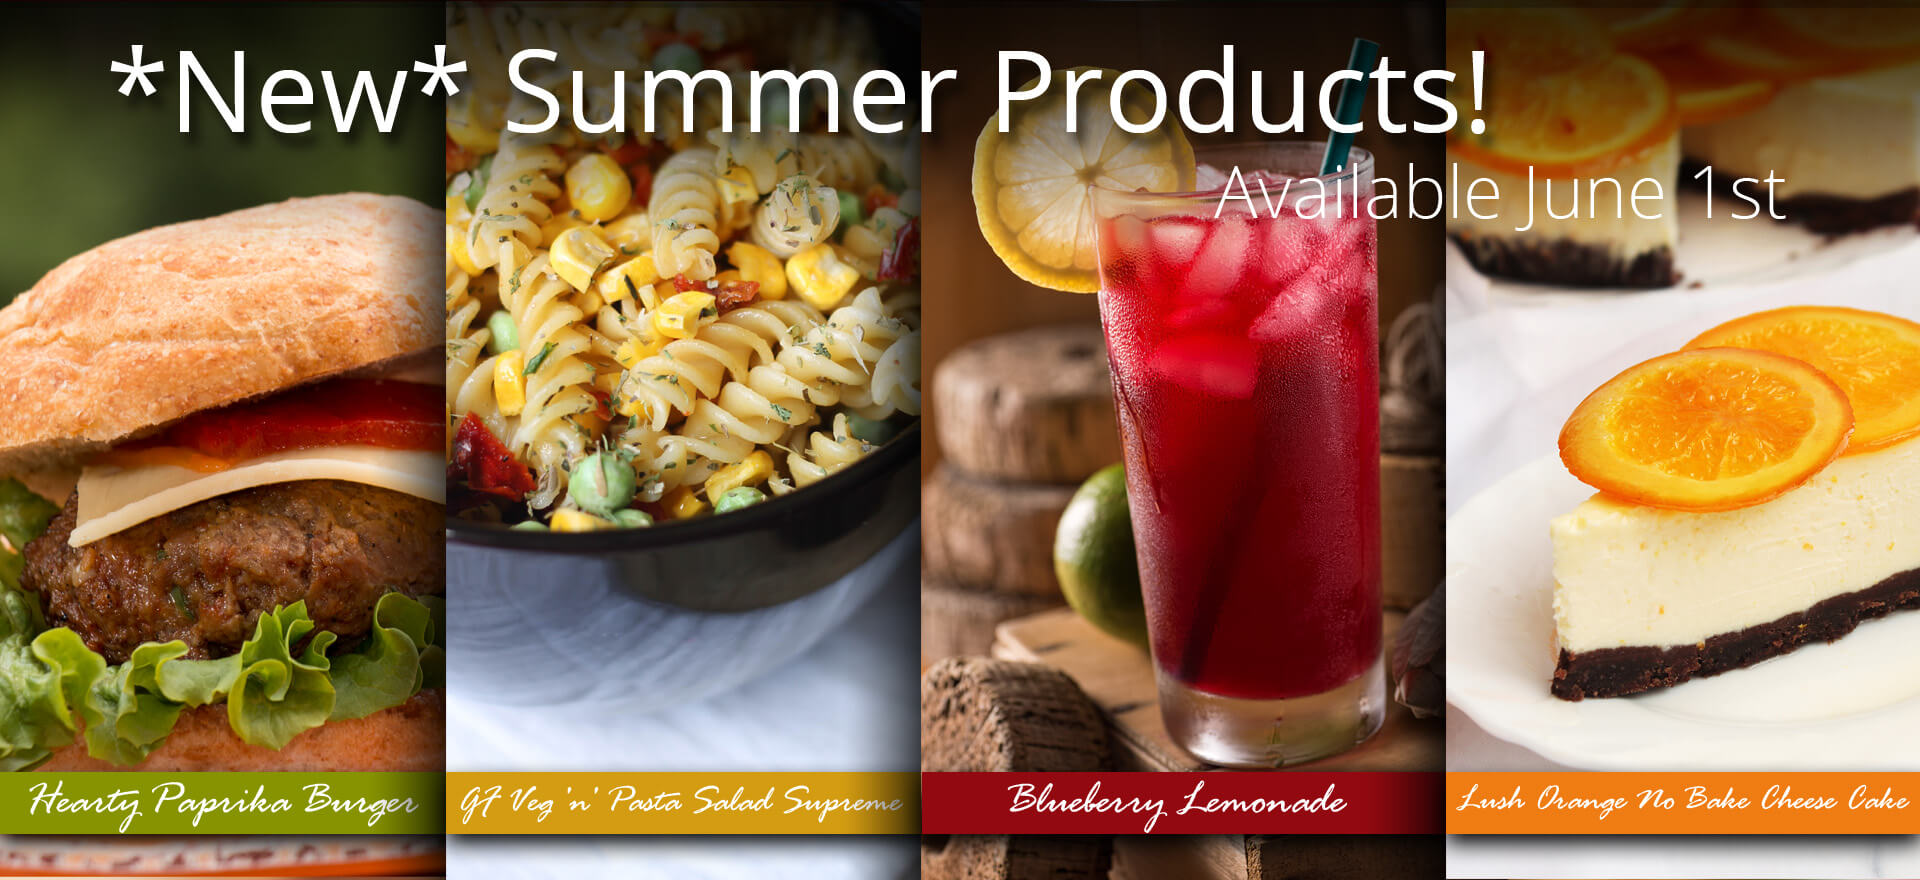 New-Summer-Products-Teaser